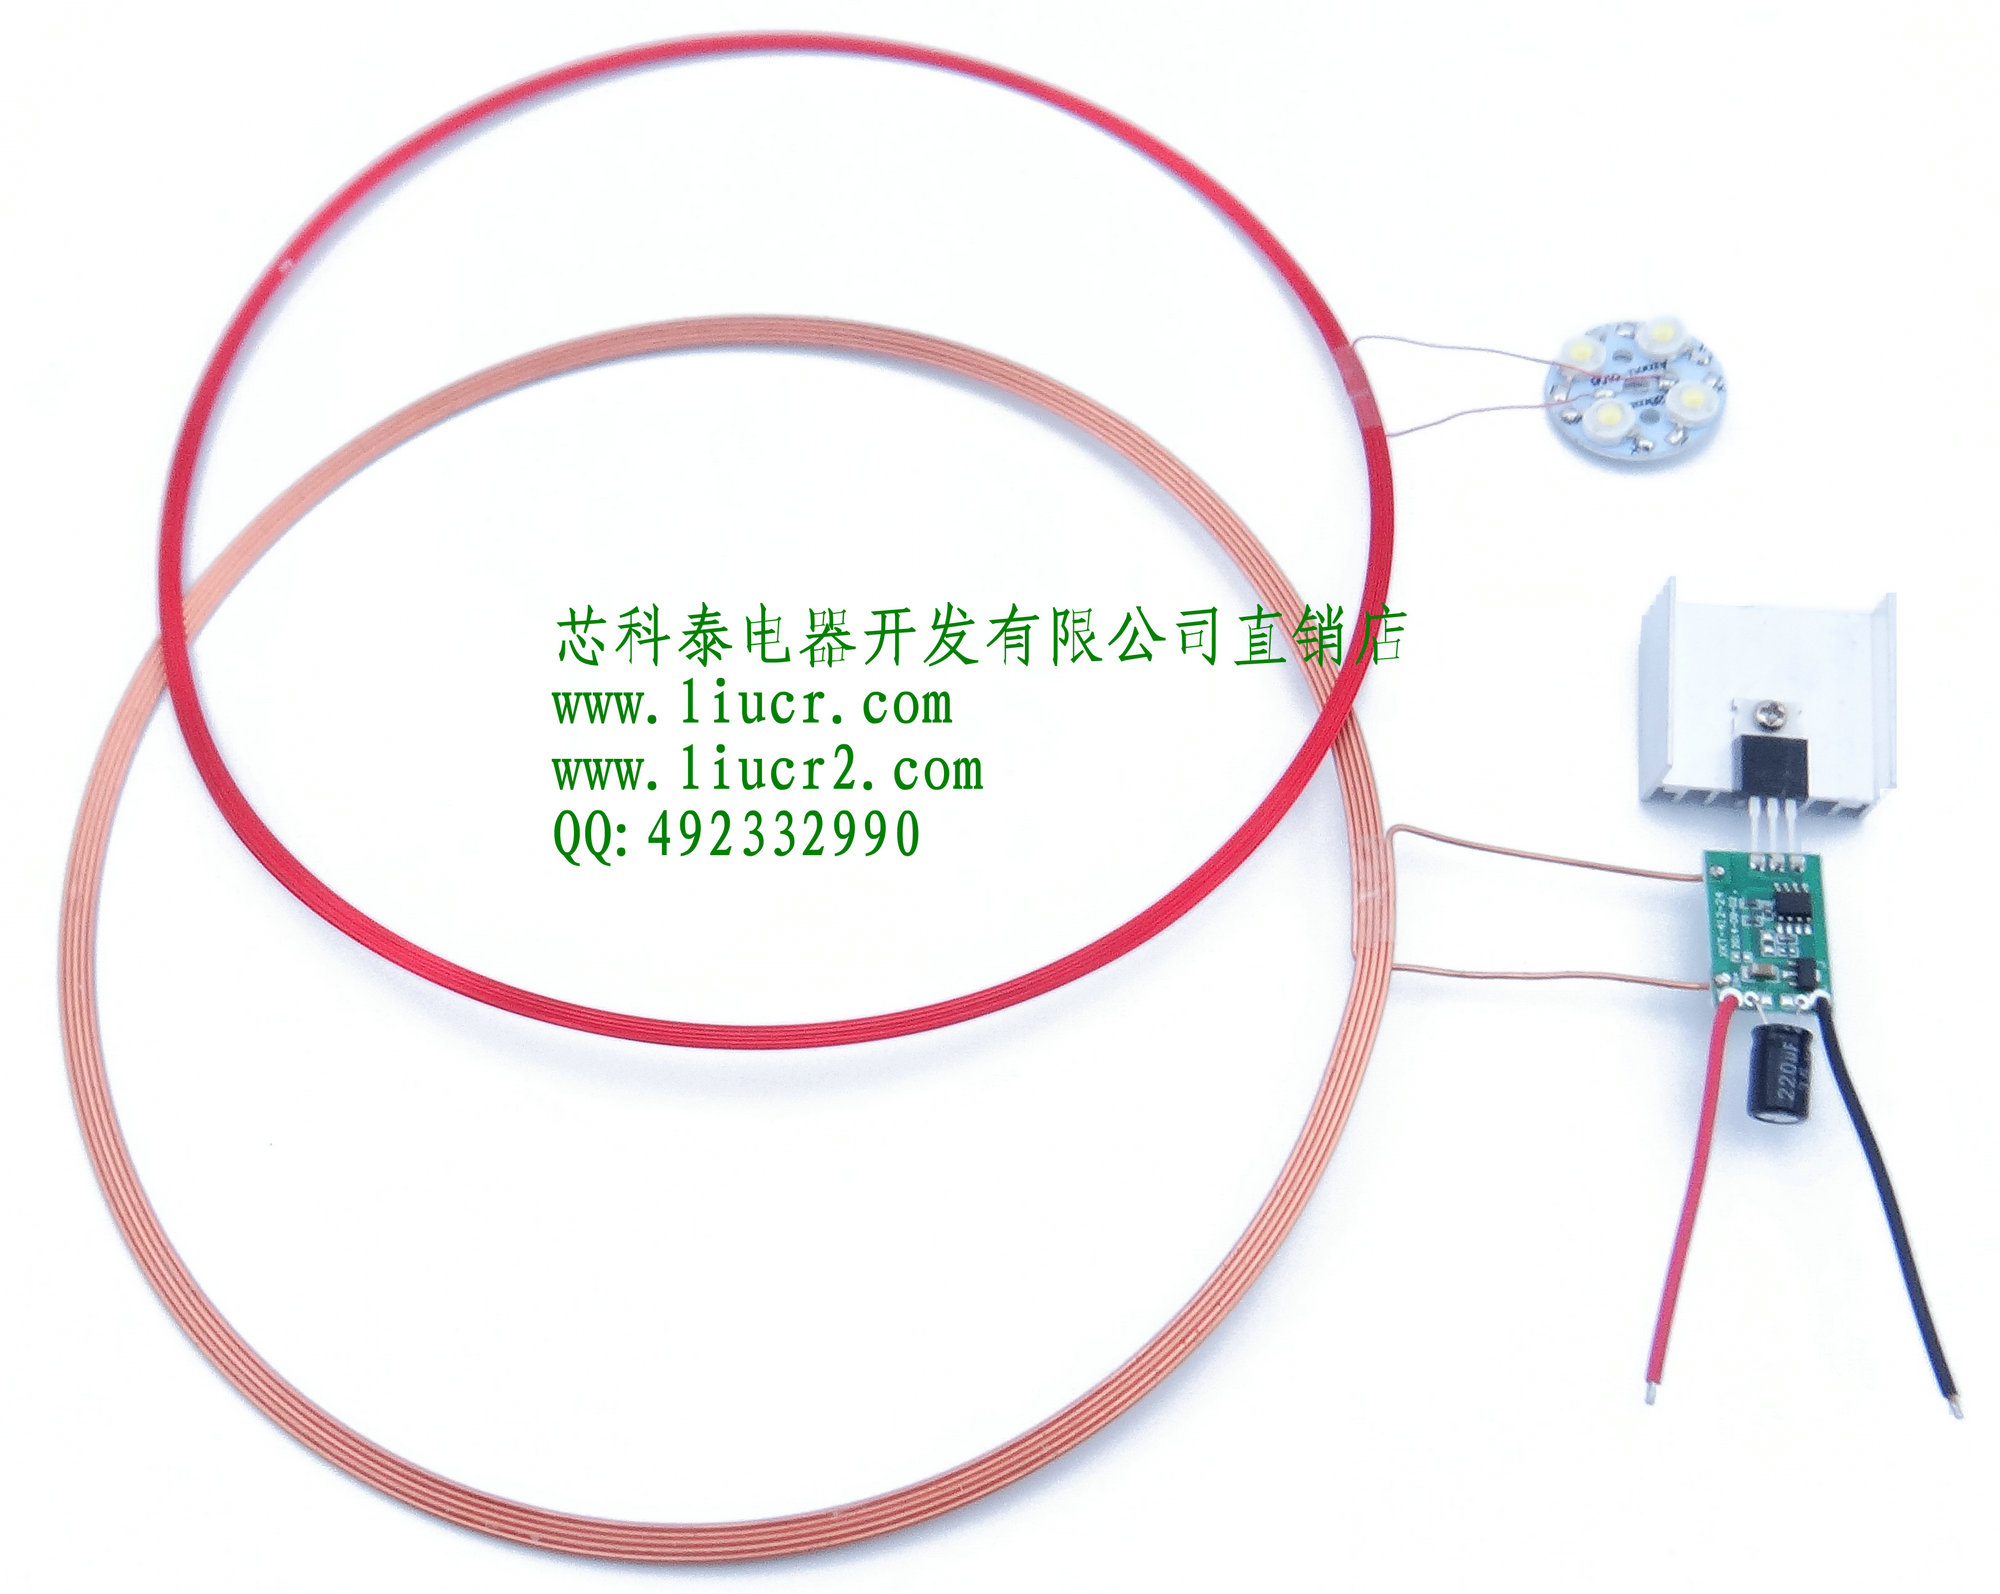 Long distance wireless transmission module of wireless 600mm DC power supply module of high-power wireless charging module 1 meter dc long distance wireless power supply charging module chip scheme wireless transmission module xkt801 05